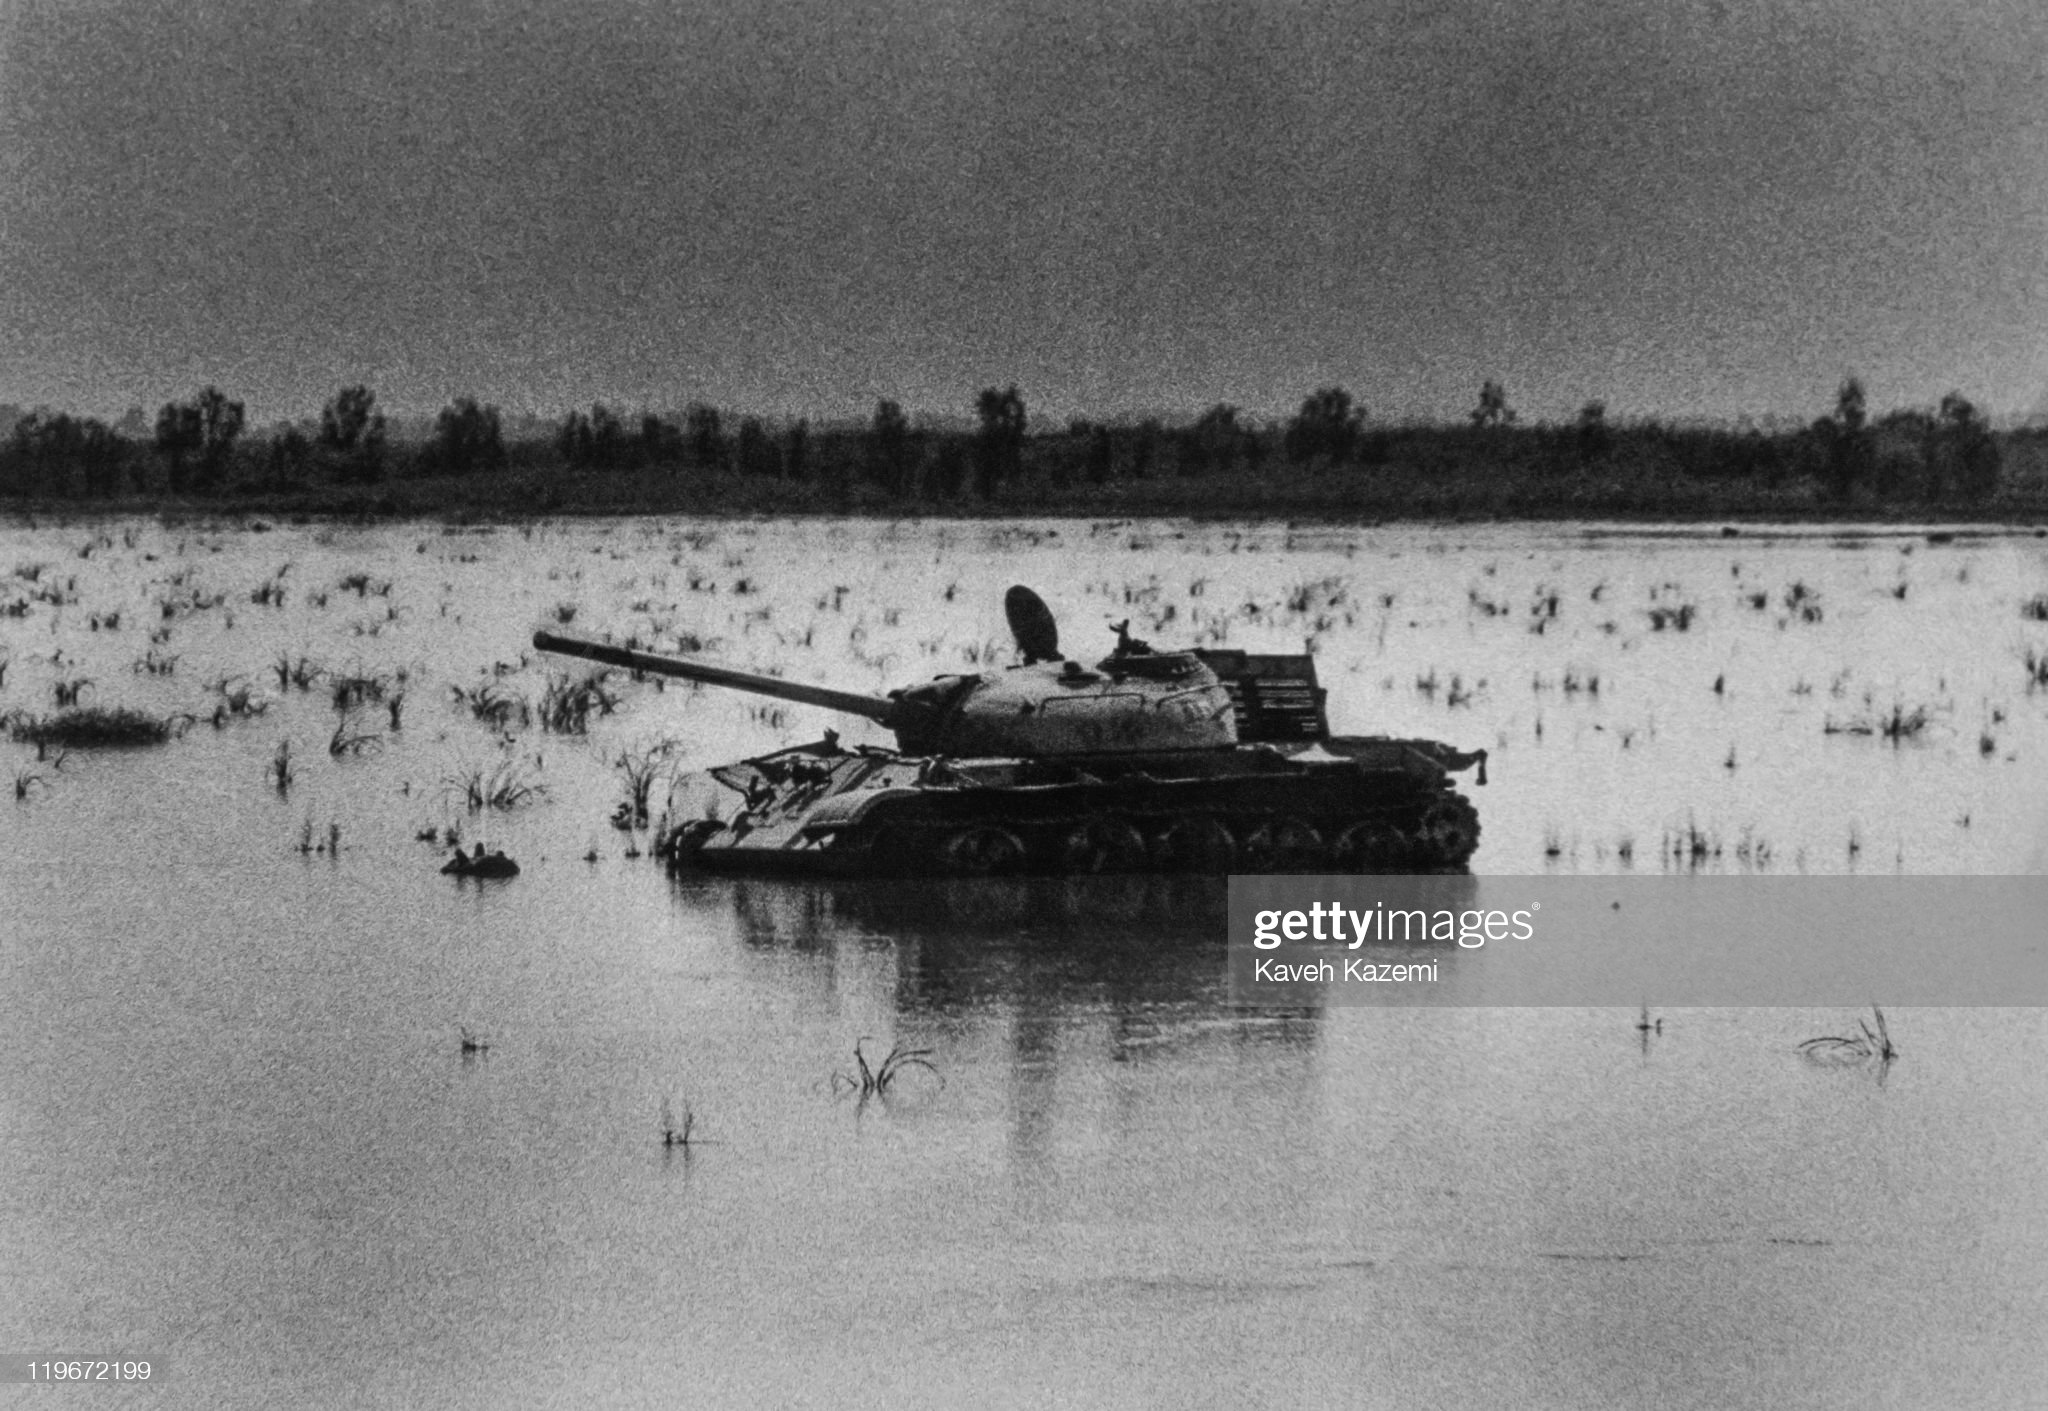 https://media.gettyimages.com/photos/knockedout-iraqi-tank-from-the-battle-of-susangerd-remains-in-ruins-picture-id119672199?s=2048x2048